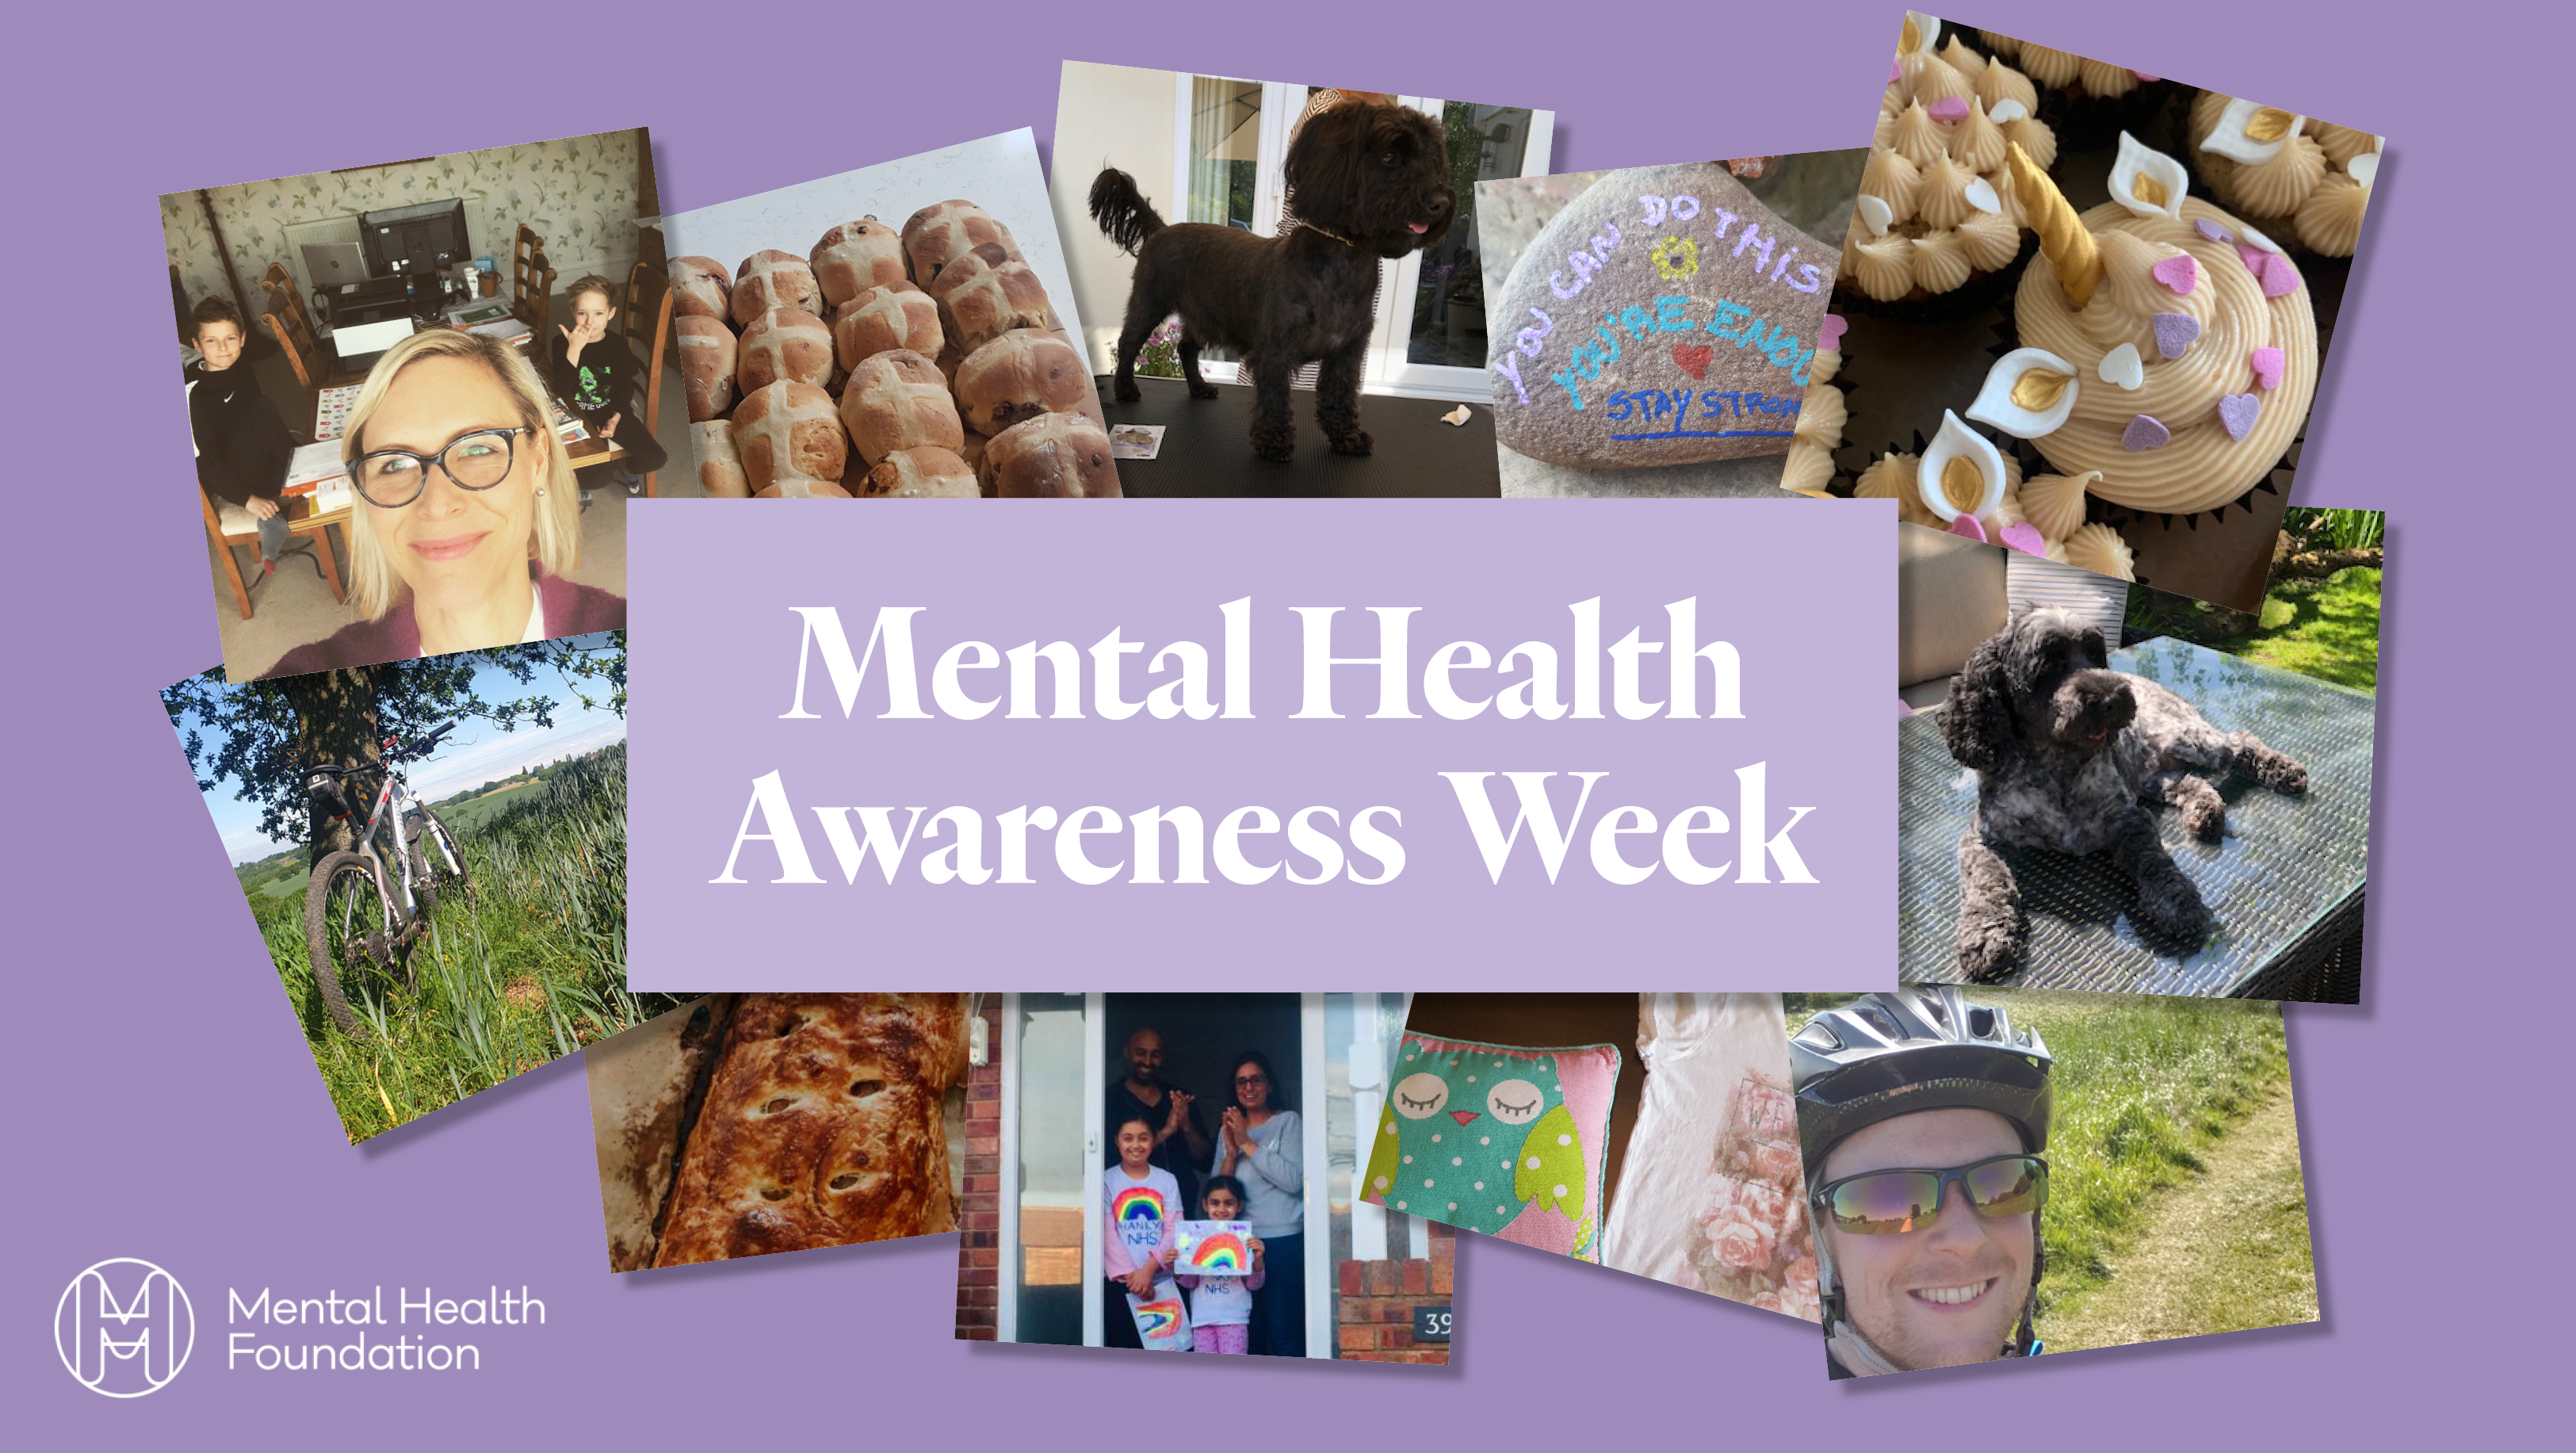 Kindness matters most this Mental Health Awareness Week